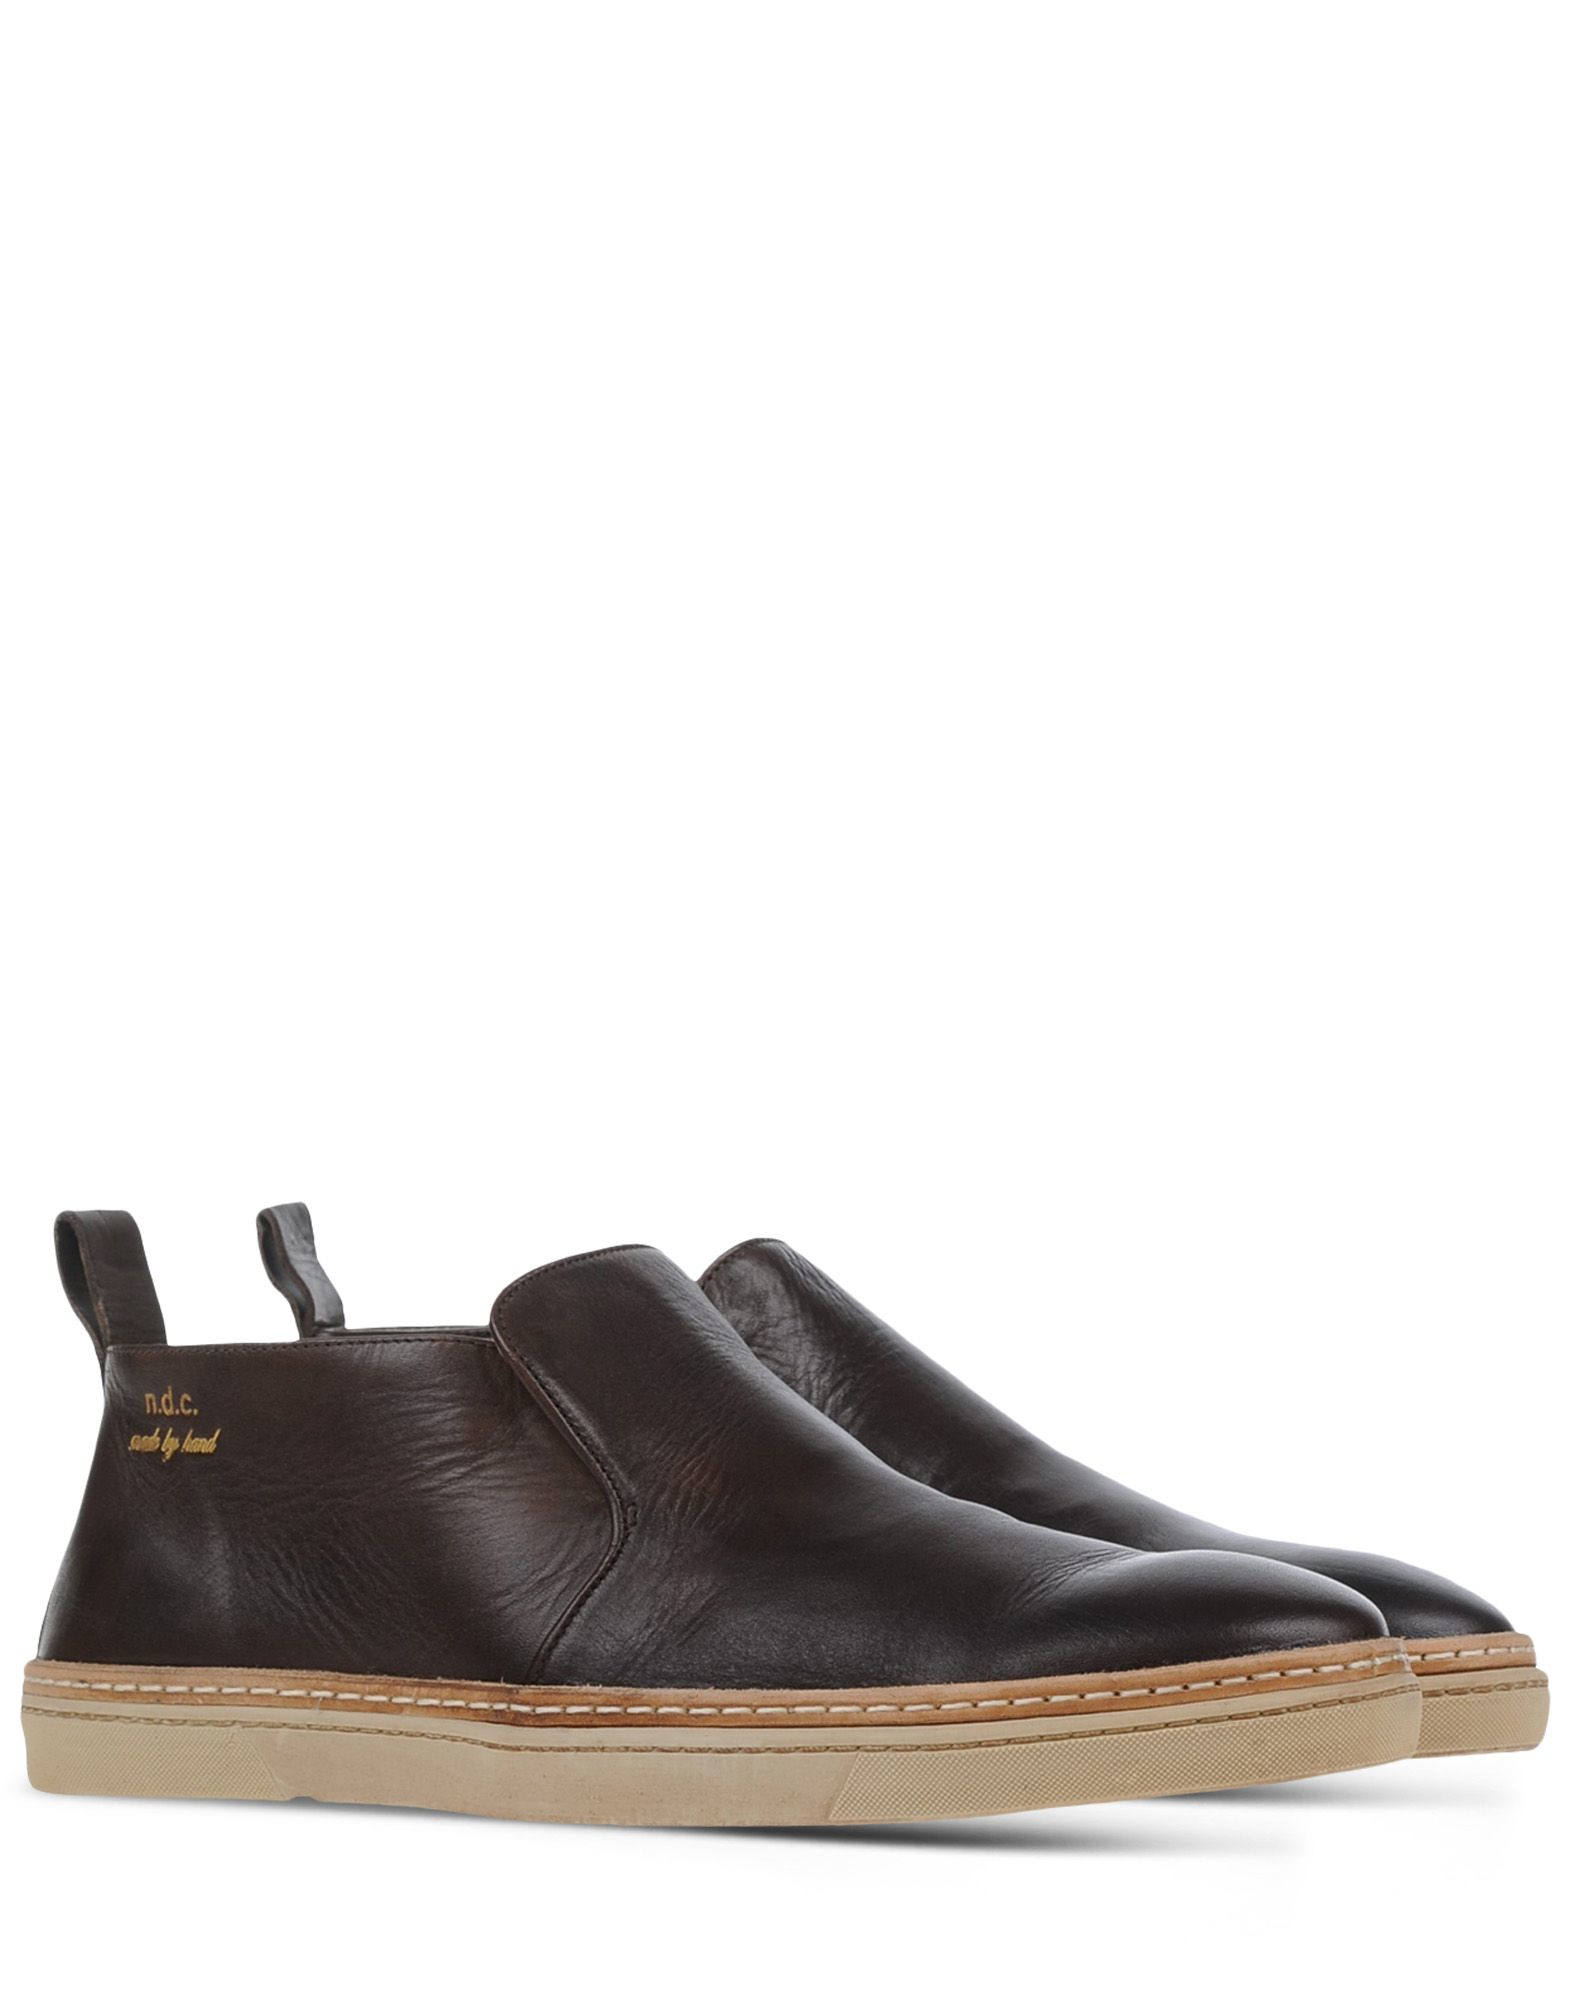 ndc high top dress shoes in brown for cocoa lyst